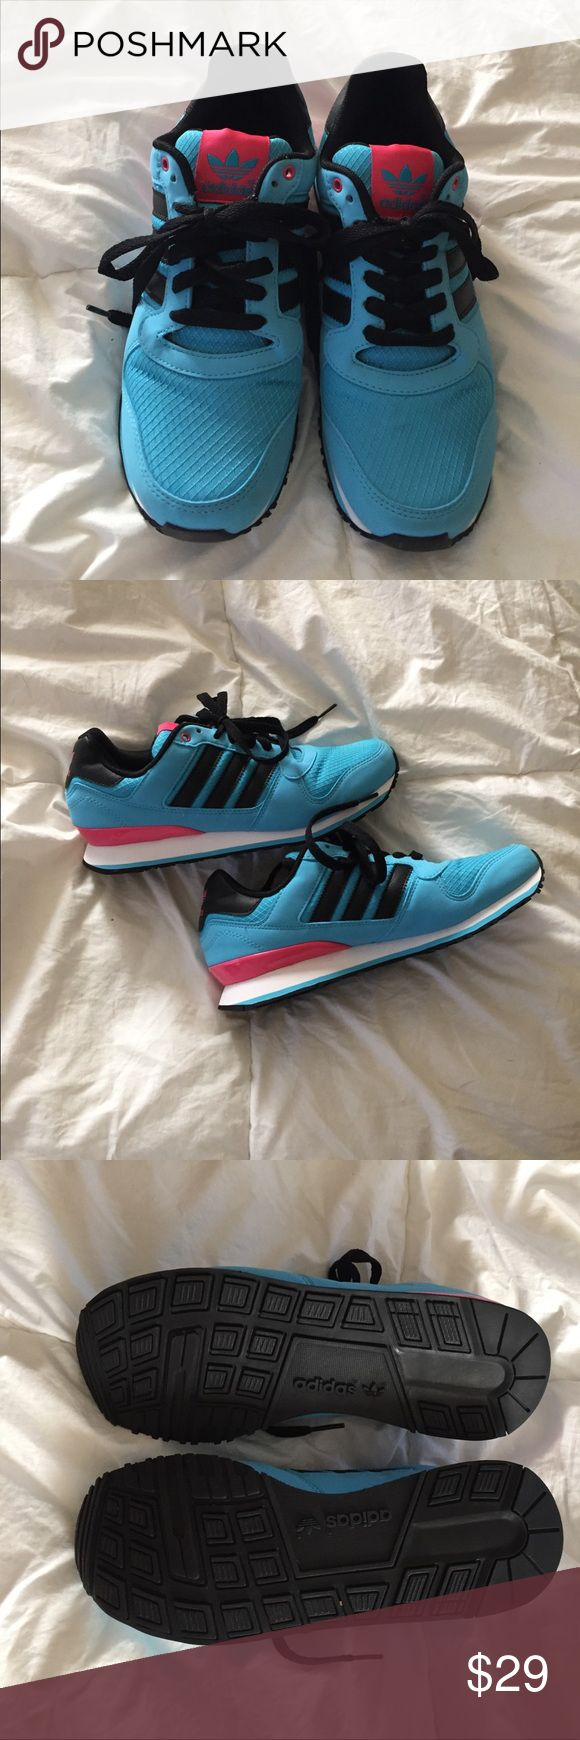 ADDIDAS ZXZ adidas womens zxz wlb 2.0 athletic blue/black/pink shoe. Purchased for daughter wore them once. Time to sell! True to size. adidas Shoes Athletic Shoes